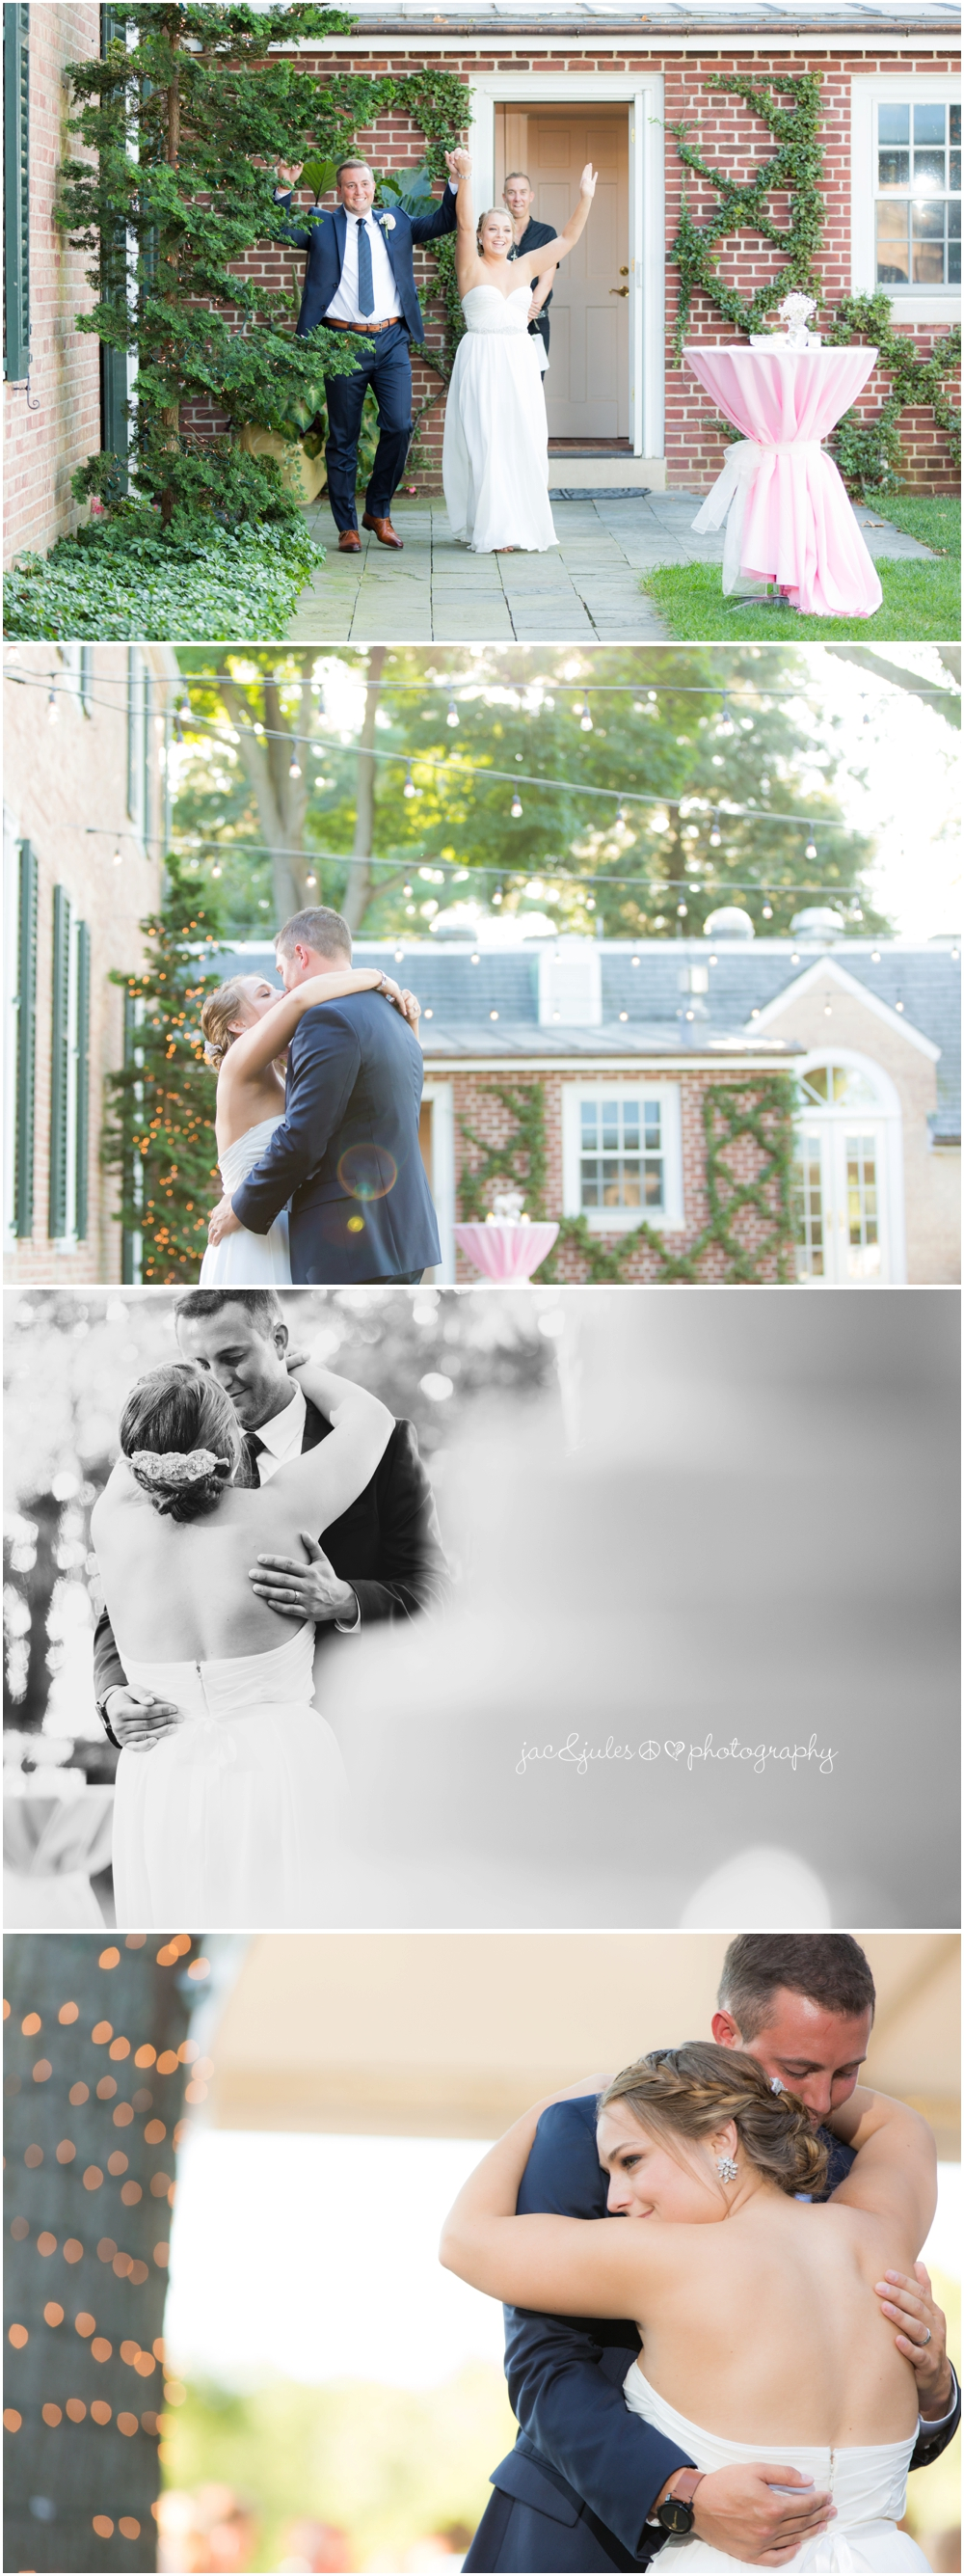 jacnjules photographs first dance outdoors at drumore estate in pa with string lights